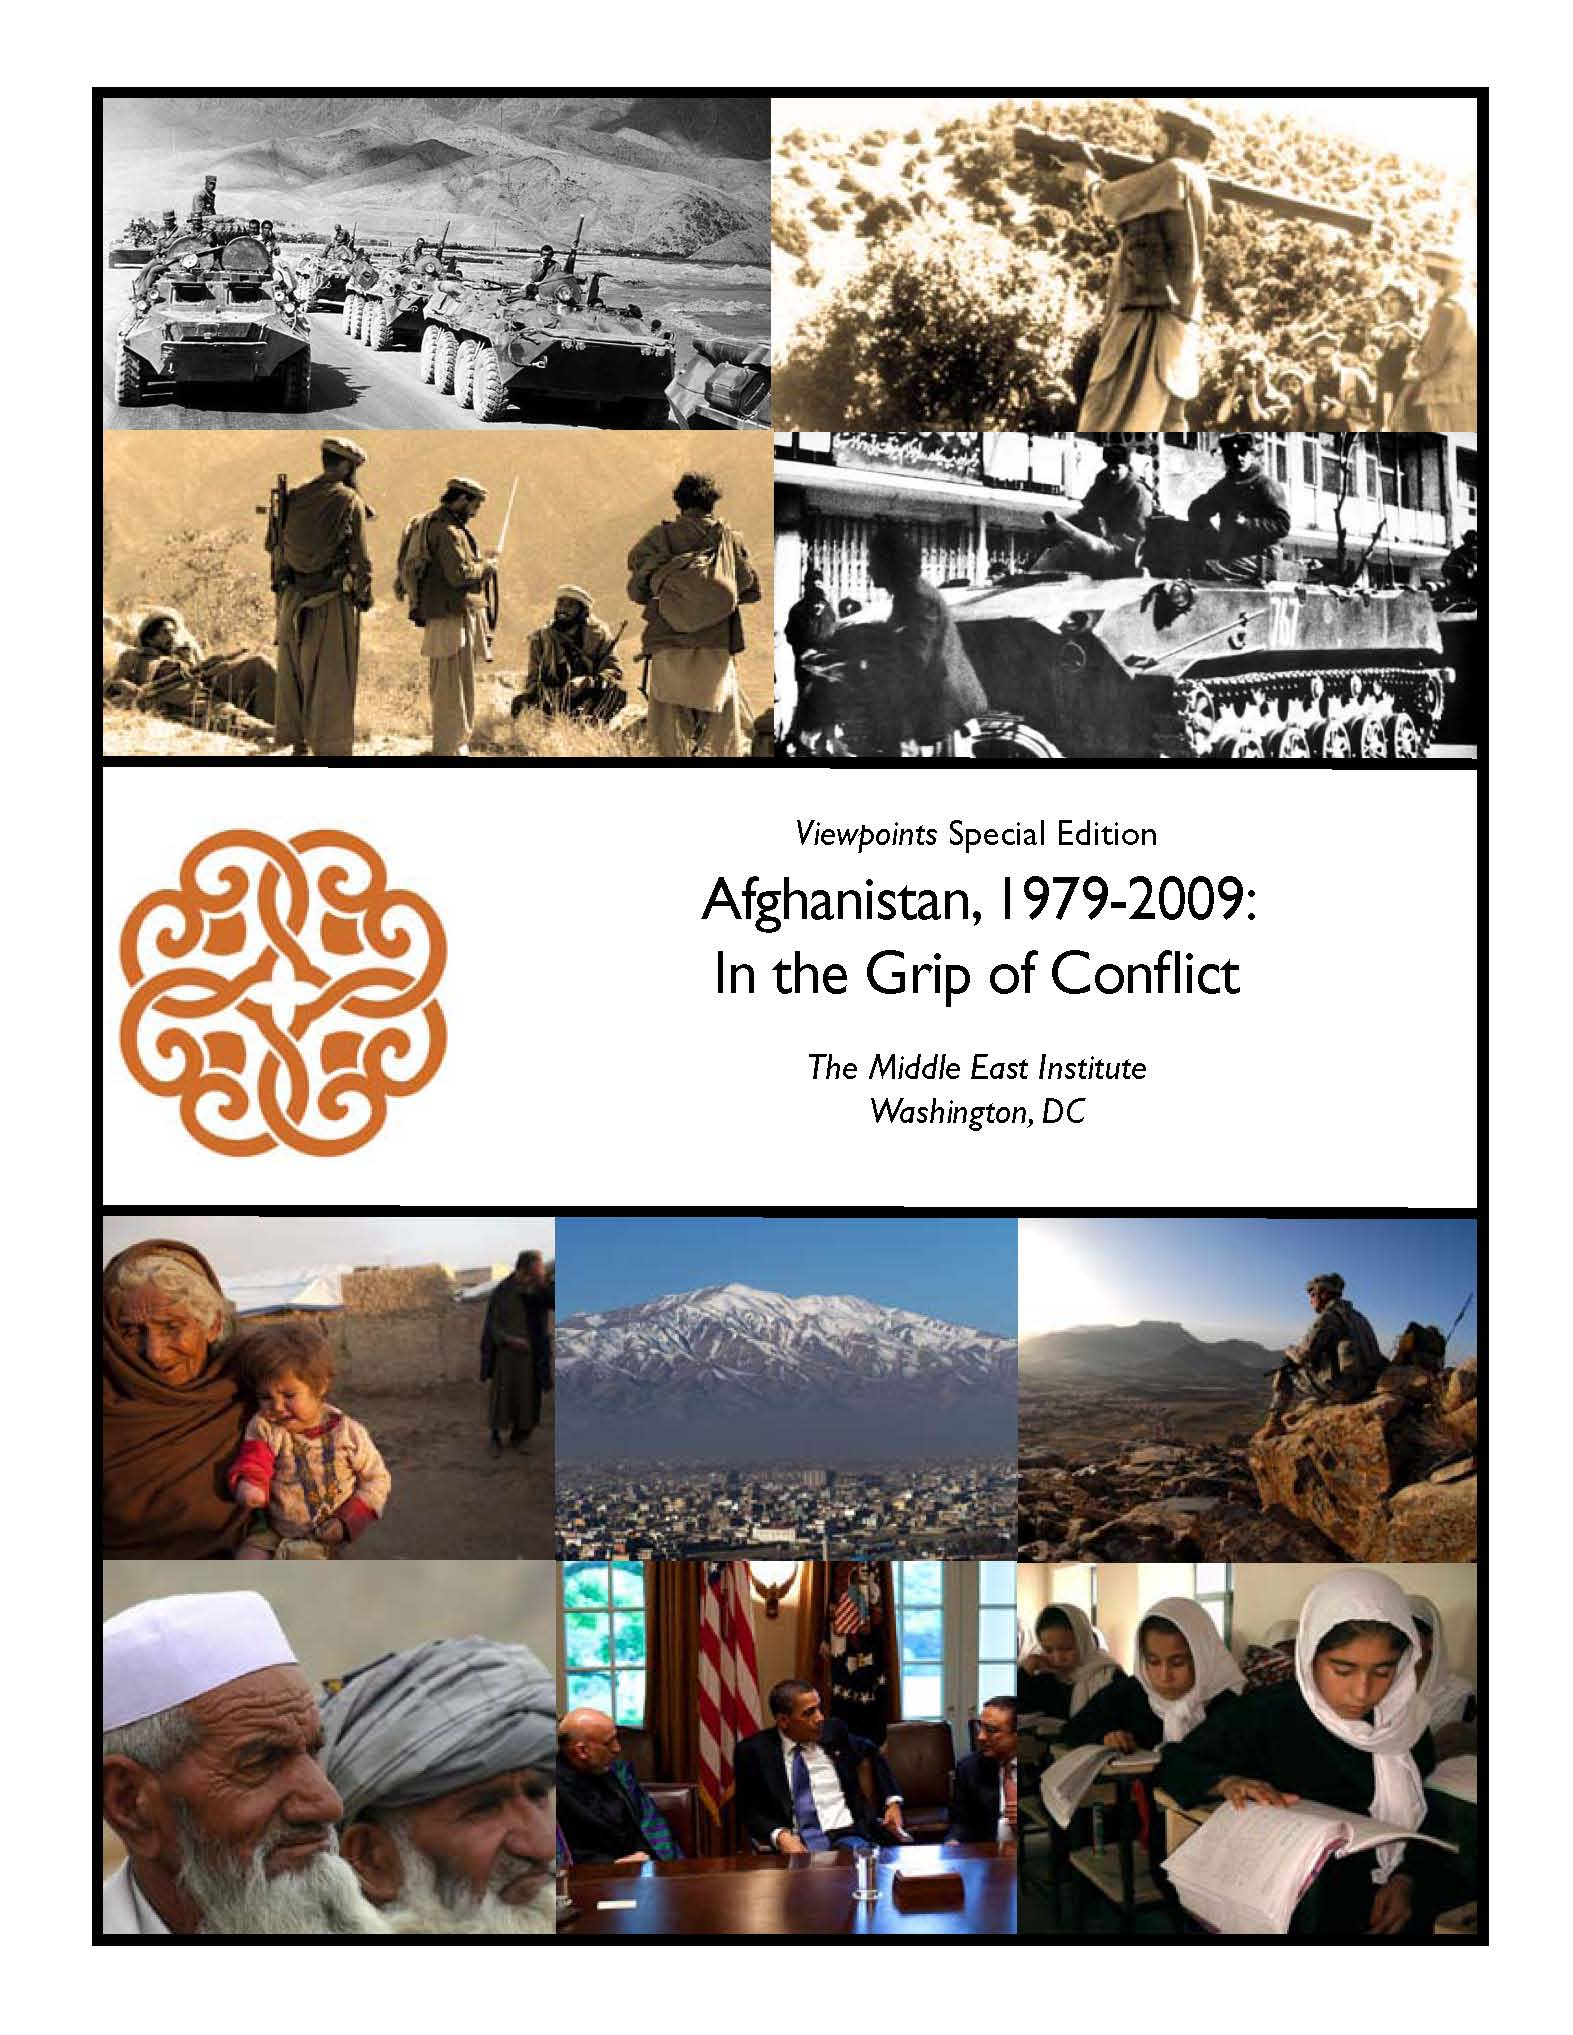 Introduction to Afghanistan, 1979-2009: In the Grip of Conflict